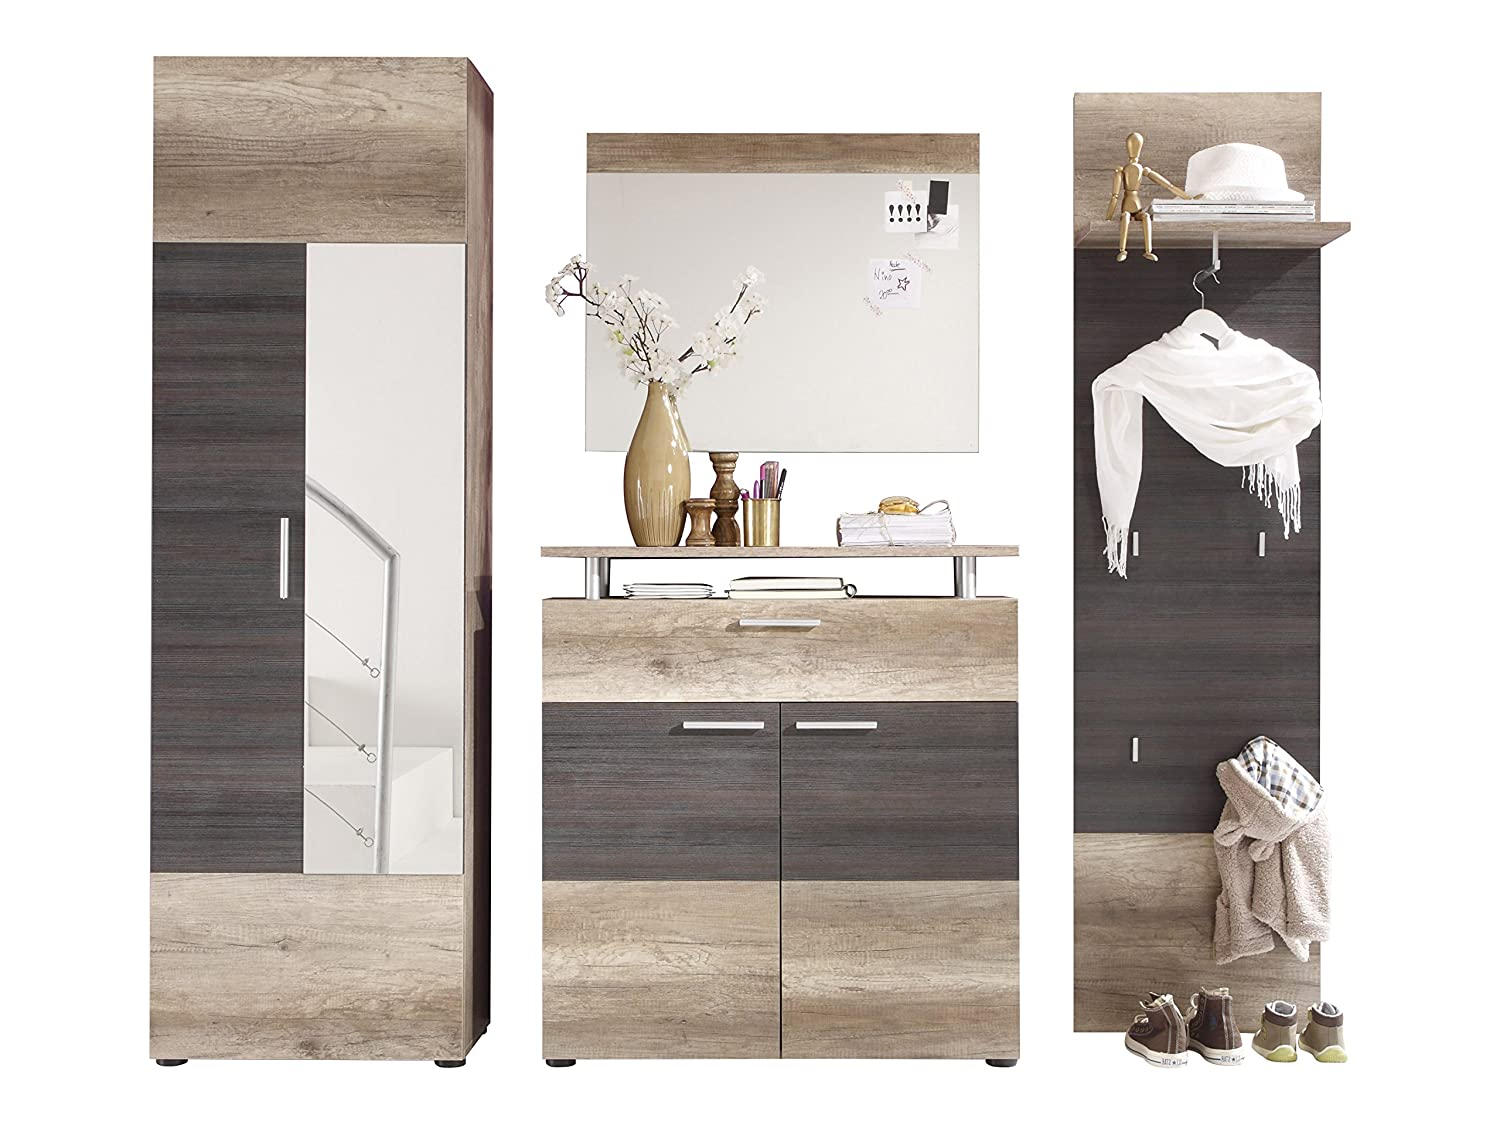 einlegebden kche latest homin trig wittena with schwebetren schrank with einlegebden kche. Black Bedroom Furniture Sets. Home Design Ideas